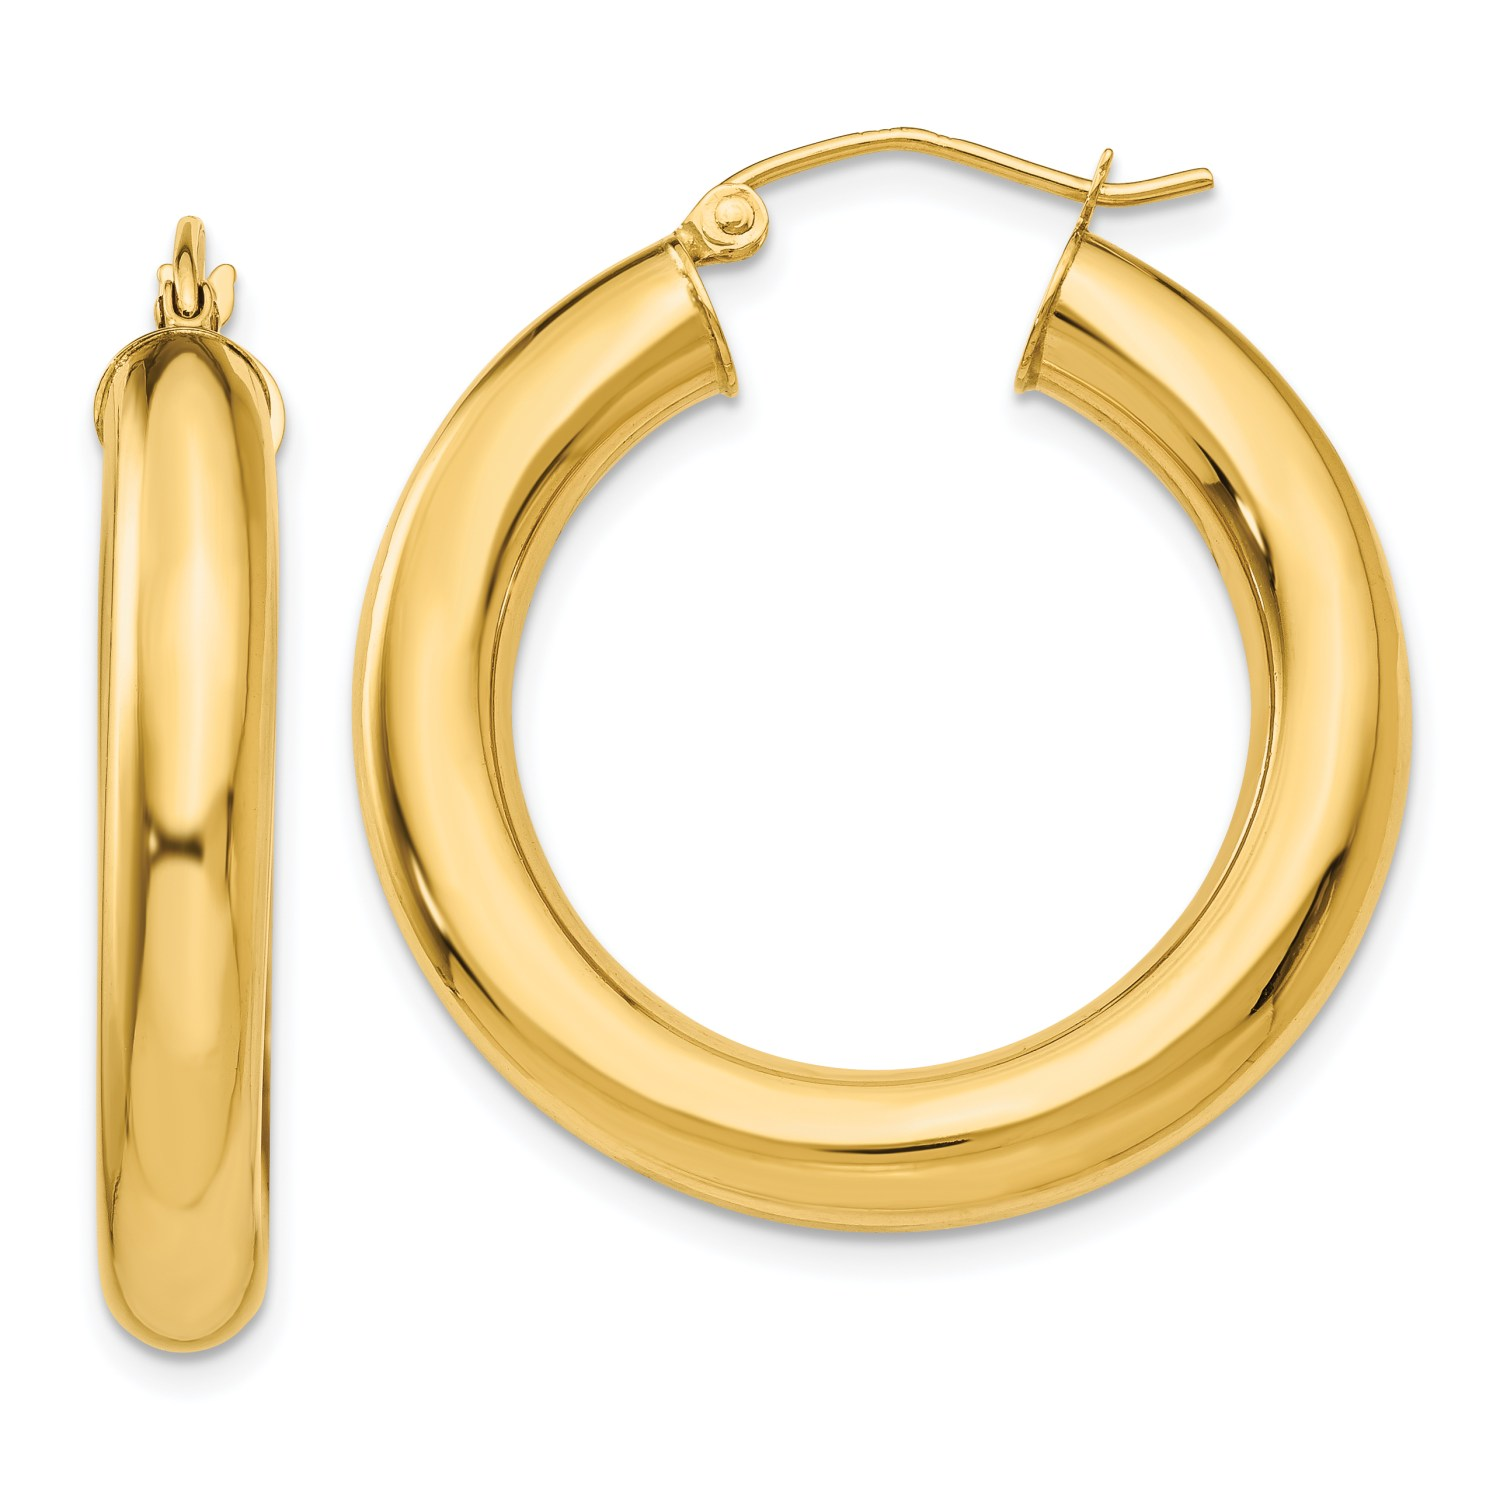 Gold Tube 14k Yellow Gold Polished 5mm Tube Hoop Earrings 30mm